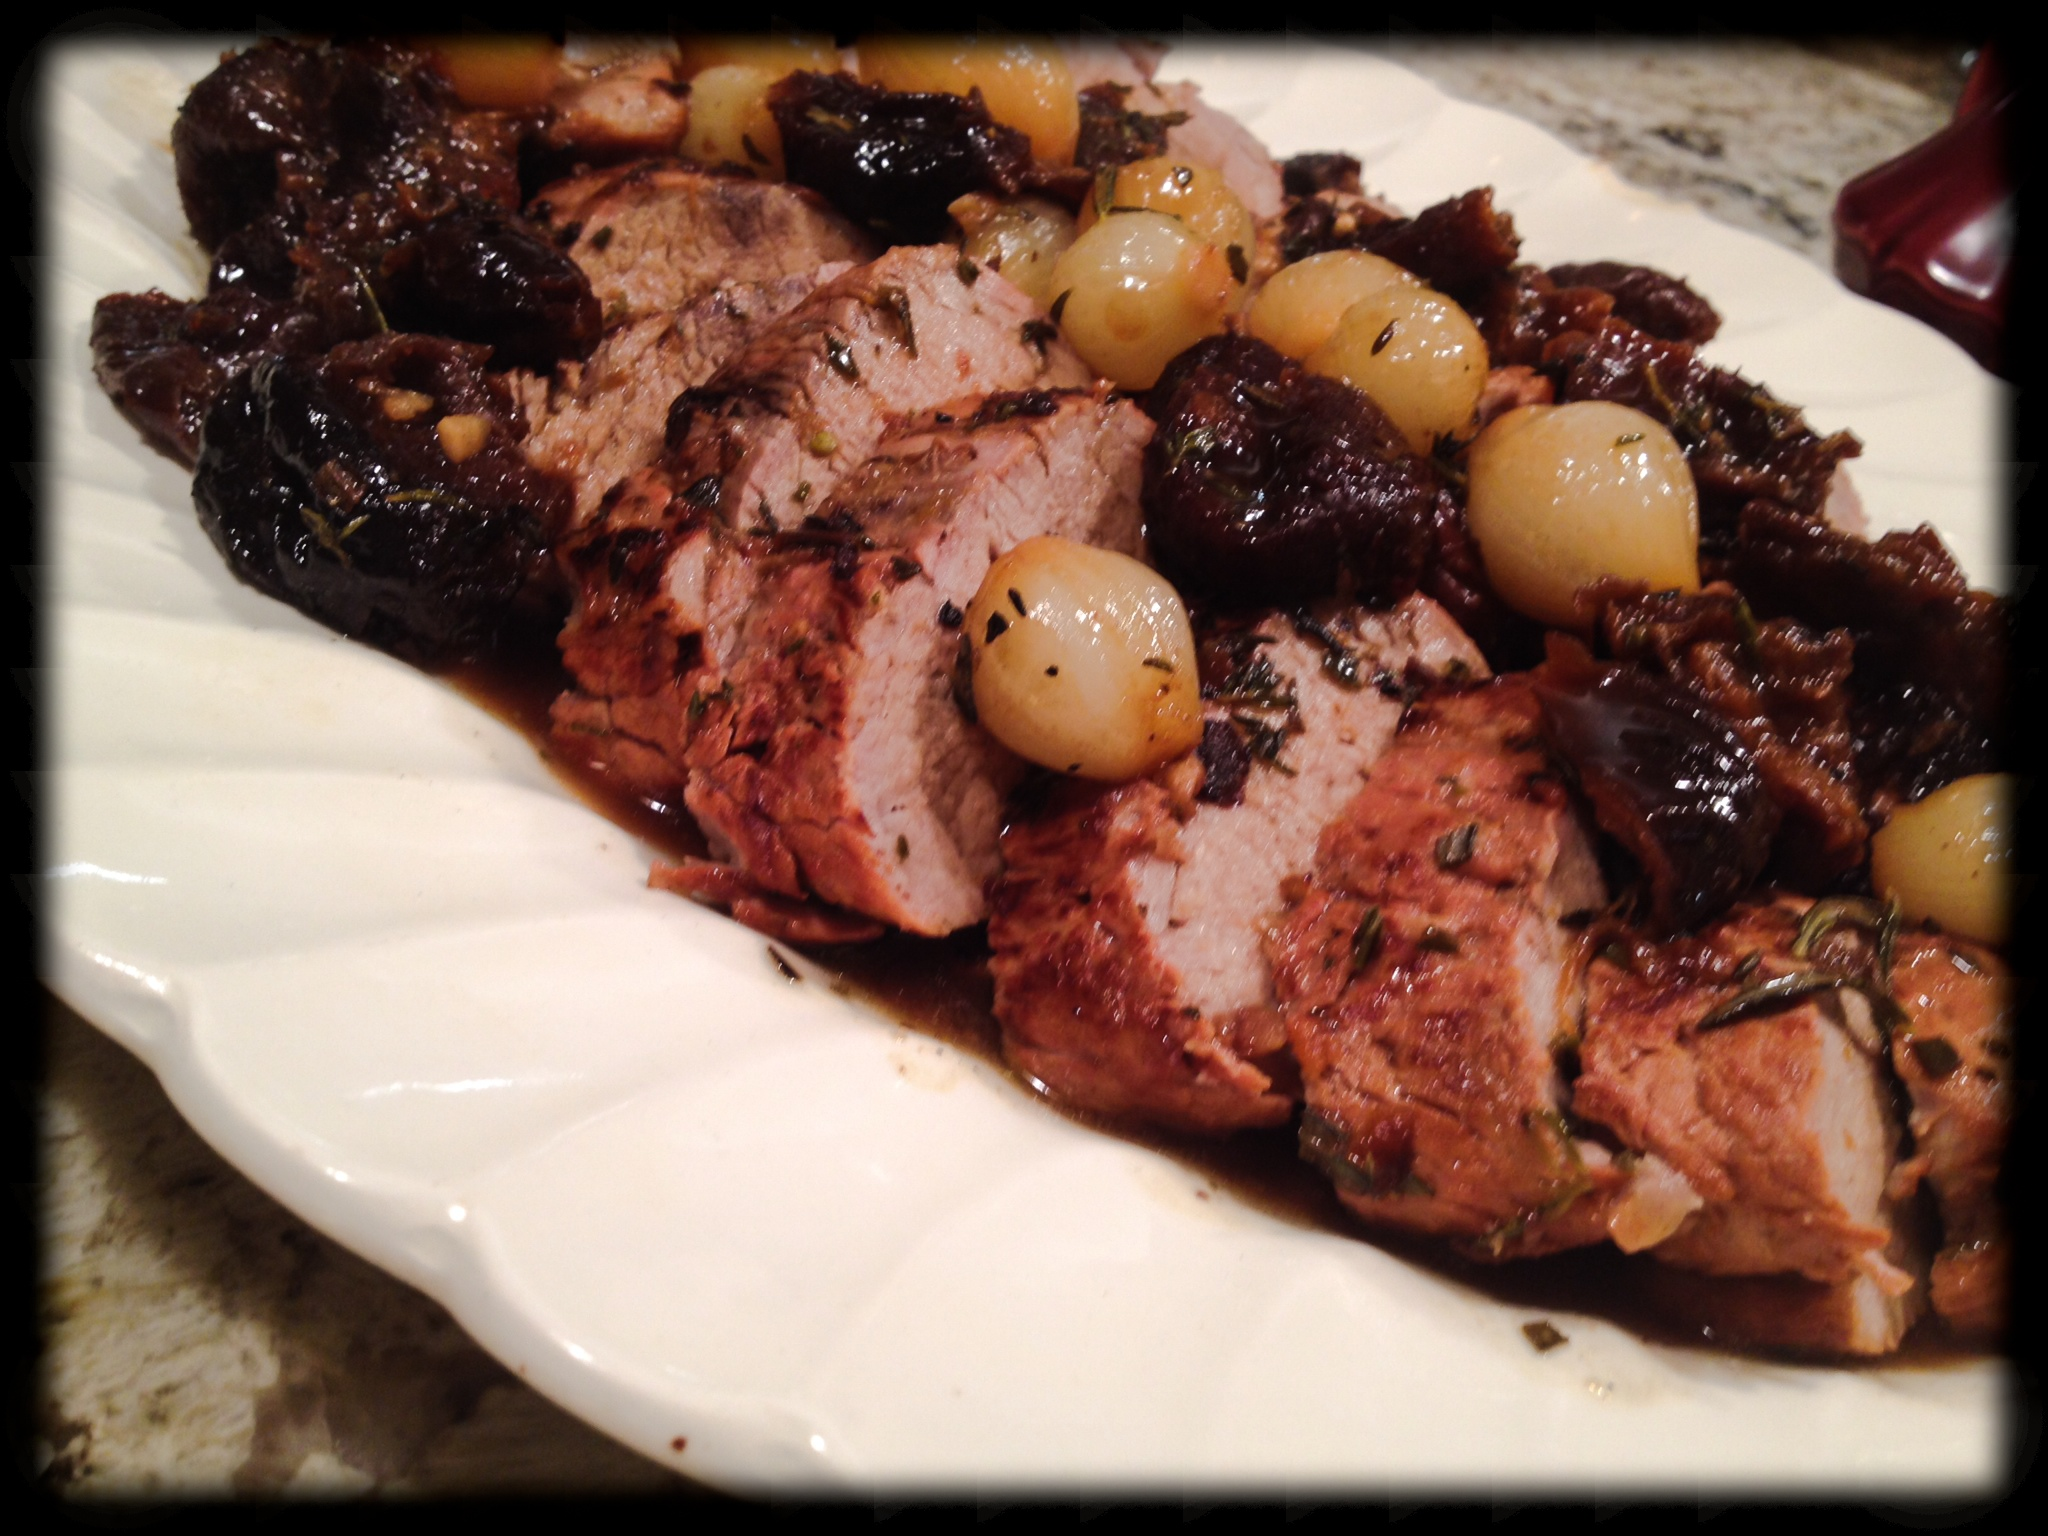 ... pork tenderloin plum sauced pork tenderloin sauteed pork tenderloin